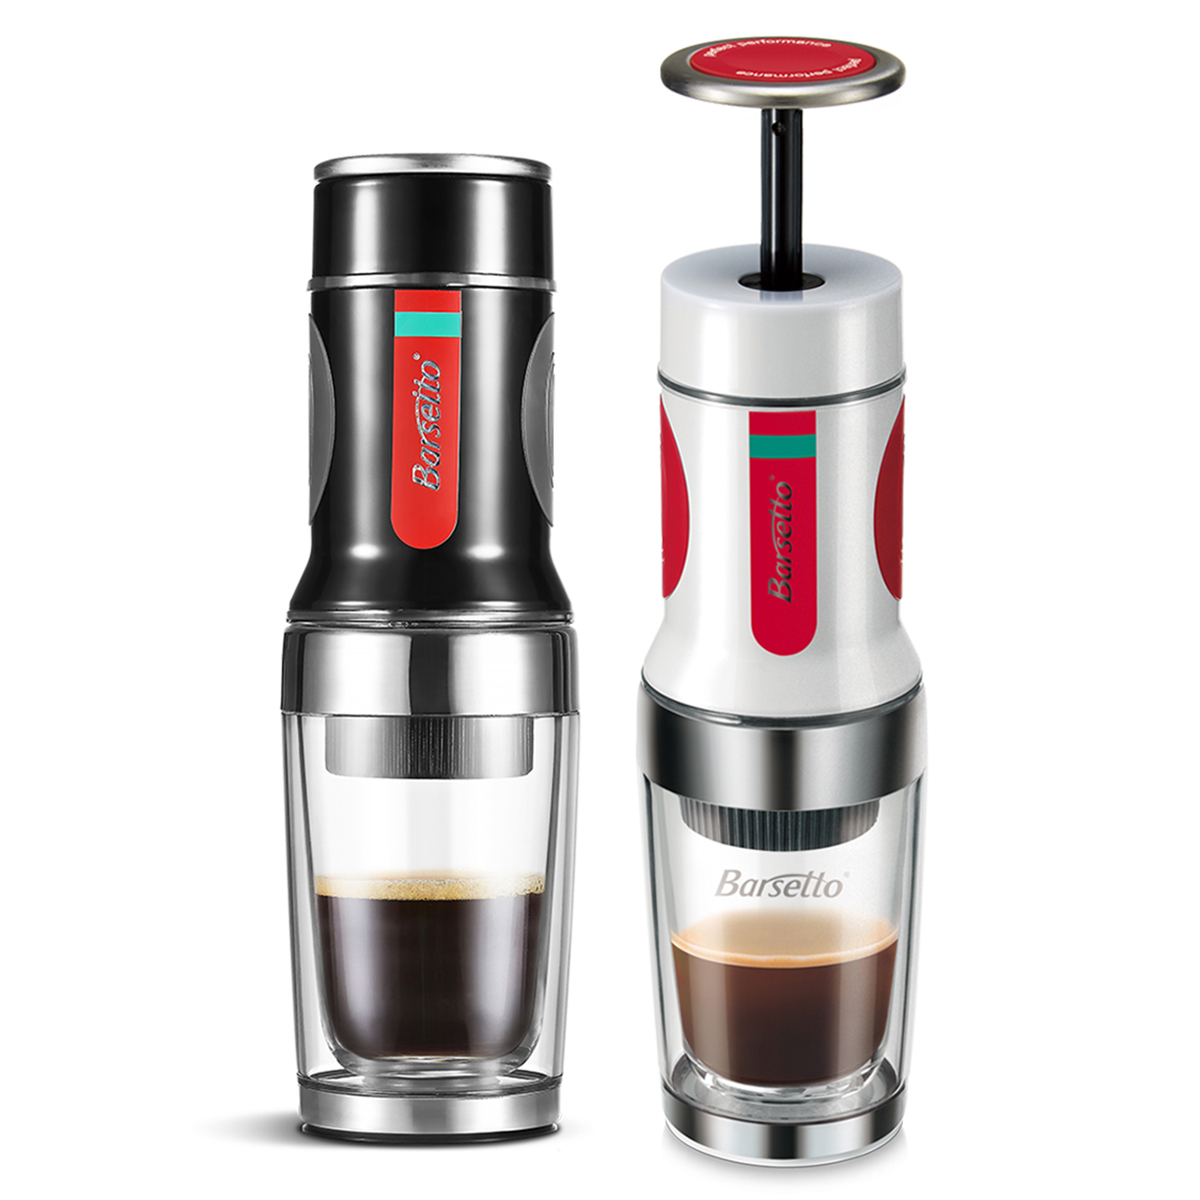 capsule coffee maker